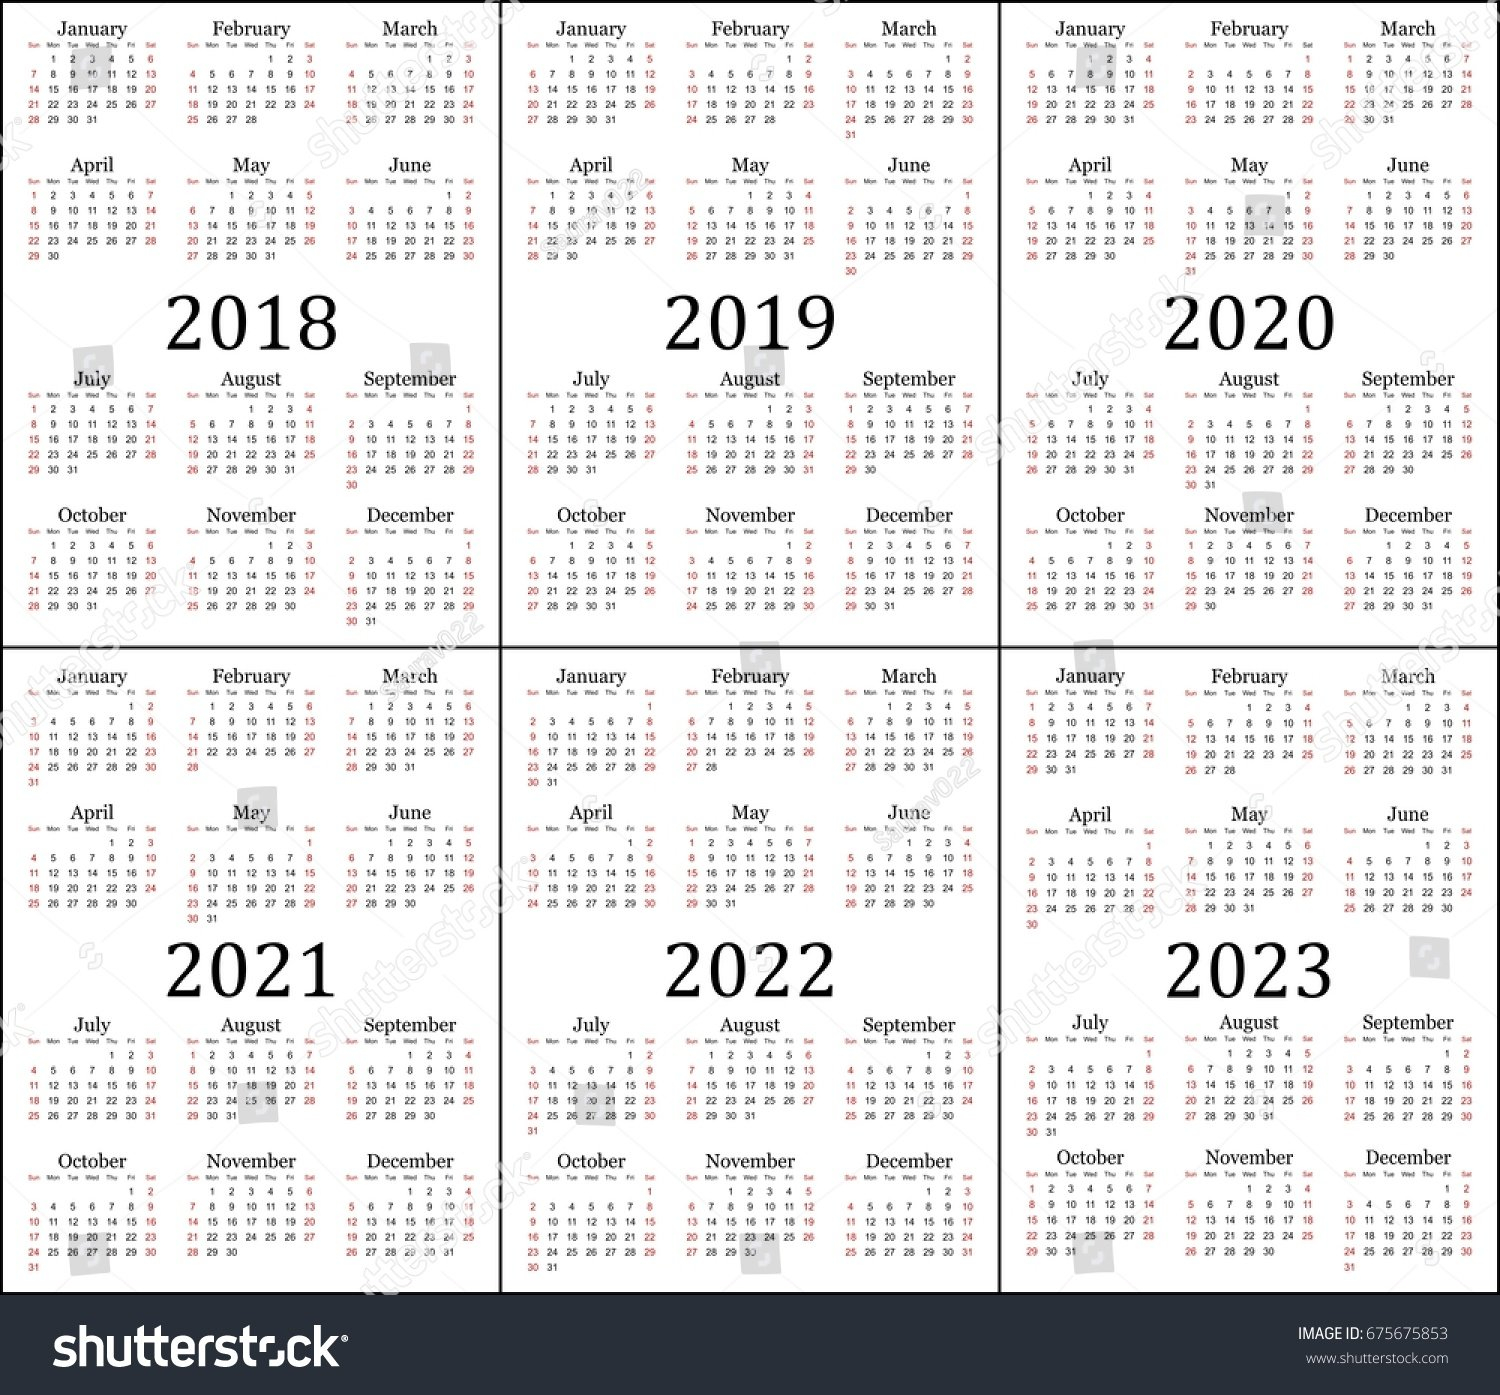 Six Year Calendar - 2018, 2019, 2020,… Stock Photo 675675853 5 Year Calendar 2019 To 2023 Printable